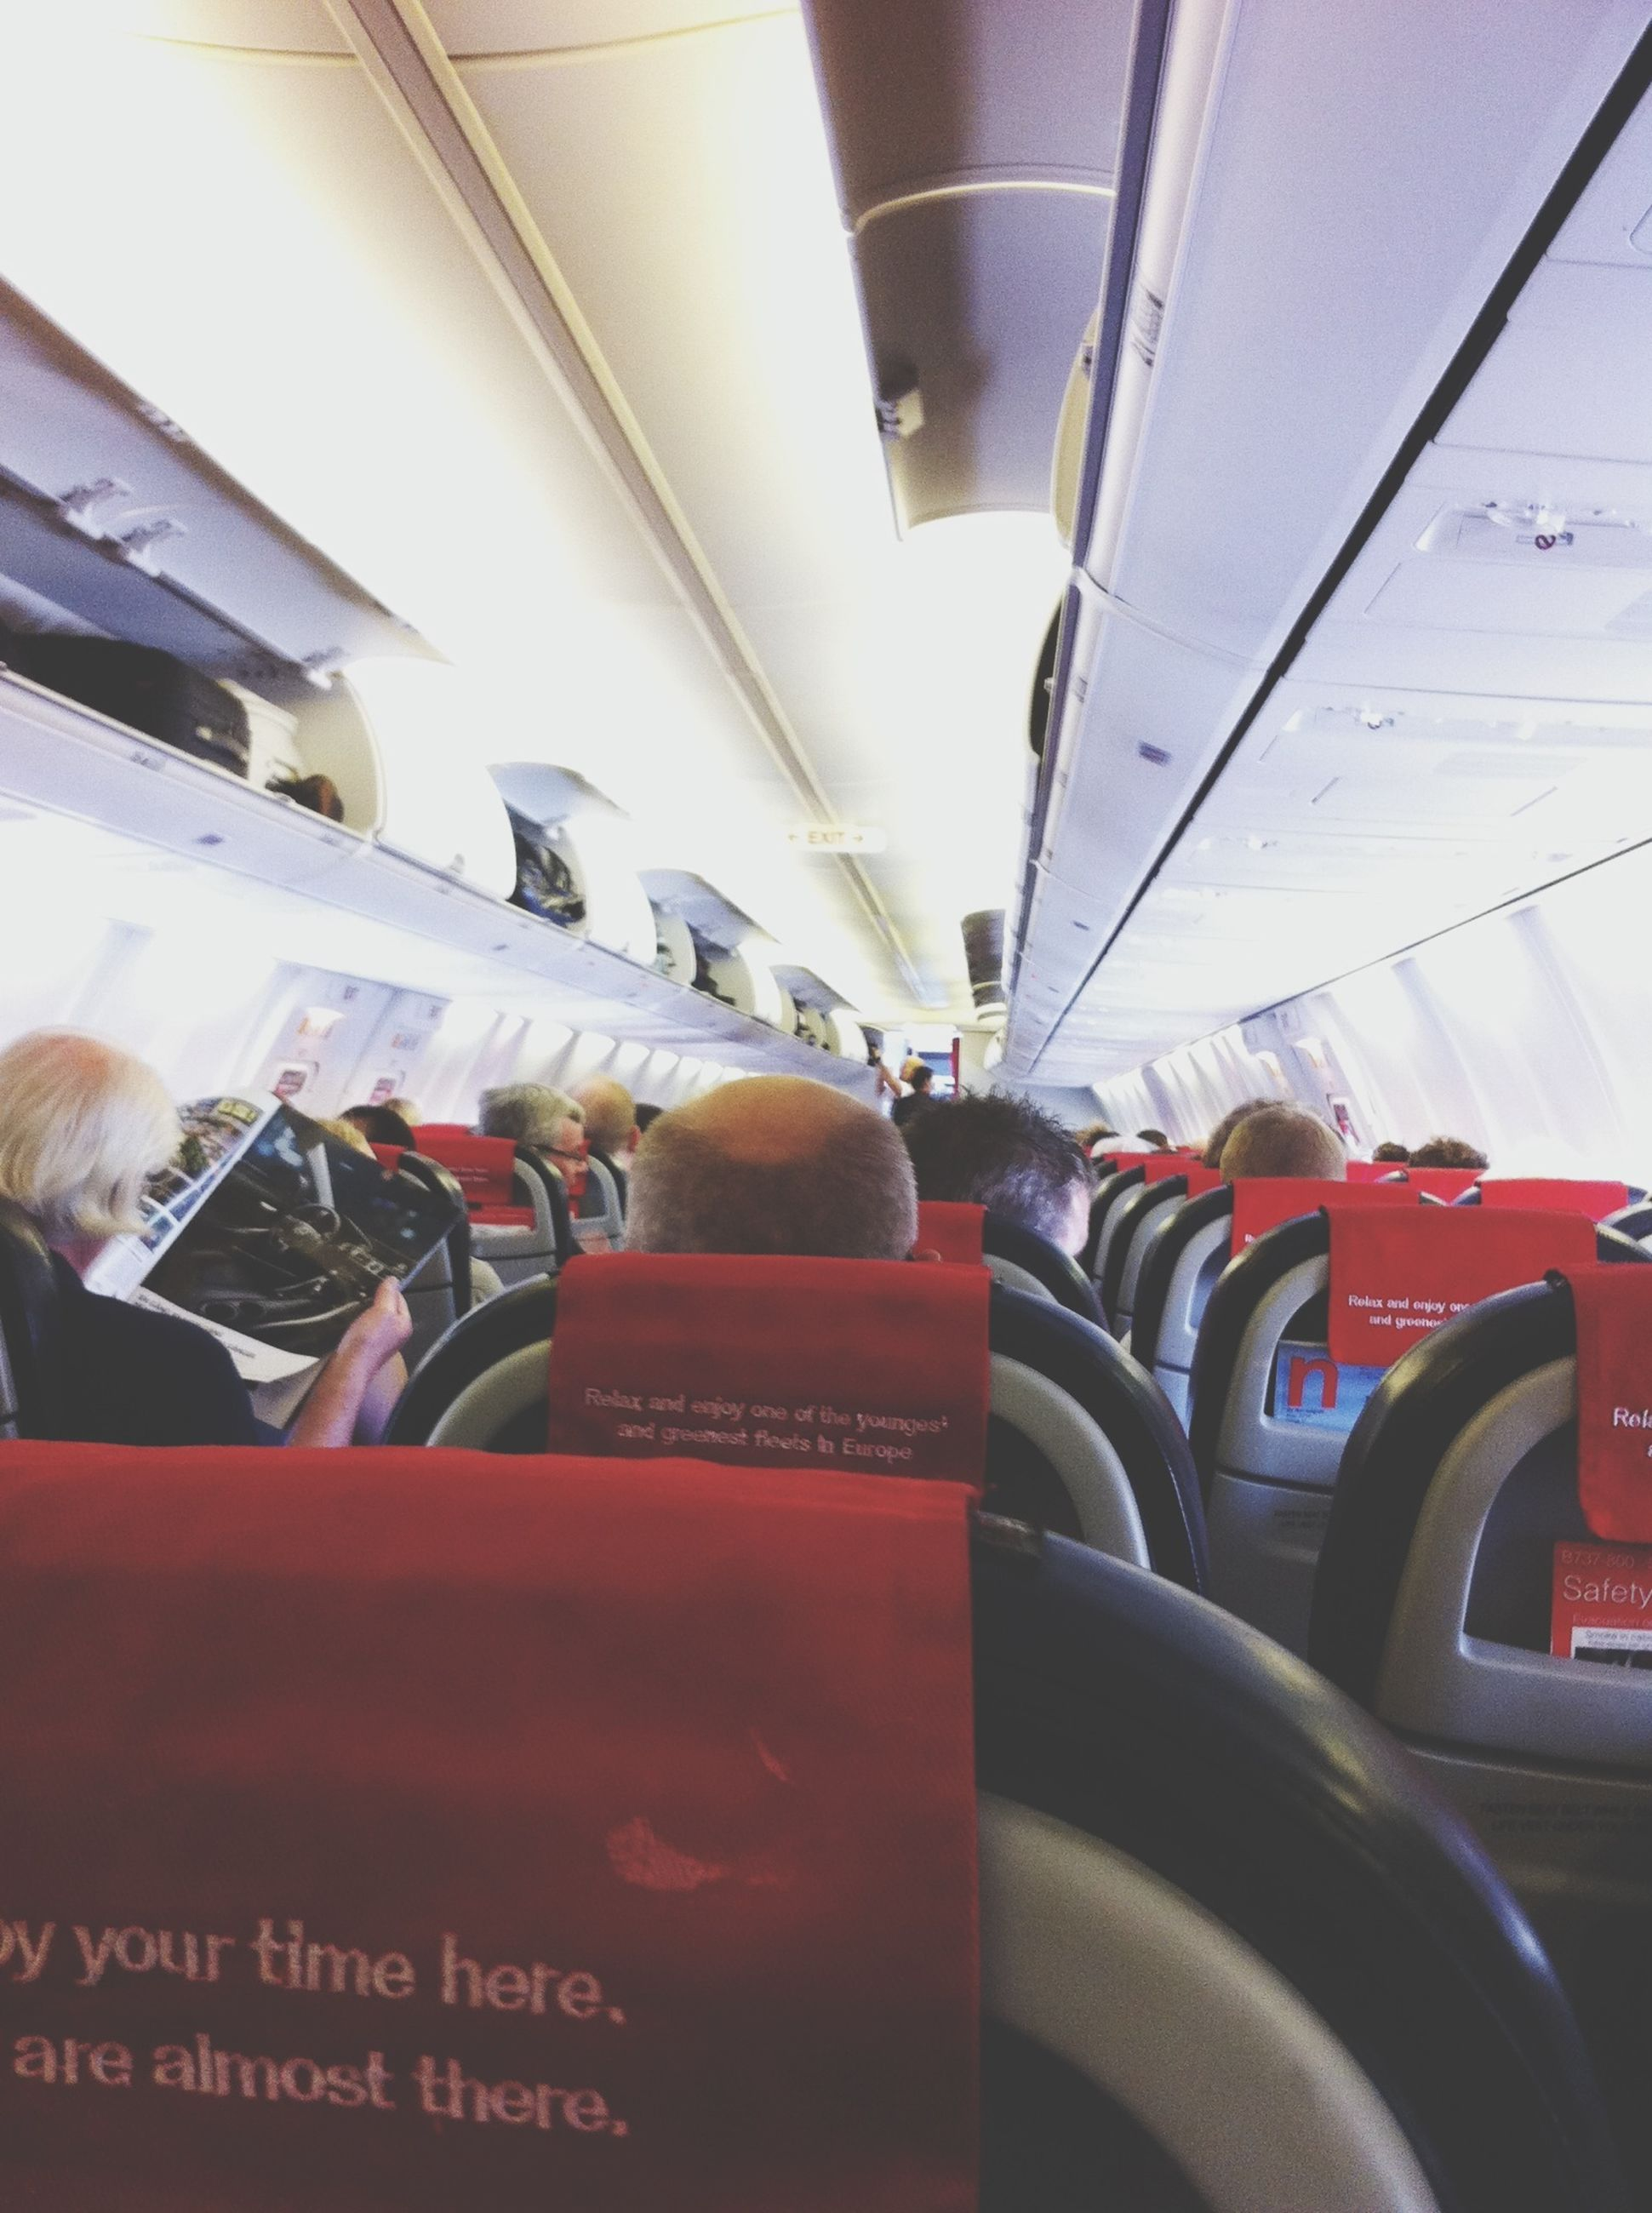 indoors, transportation, in a row, vehicle seat, vehicle interior, mode of transport, seat, public transportation, travel, red, large group of objects, train - vehicle, illuminated, order, journey, choice, incidental people, arrangement, side by side, abundance